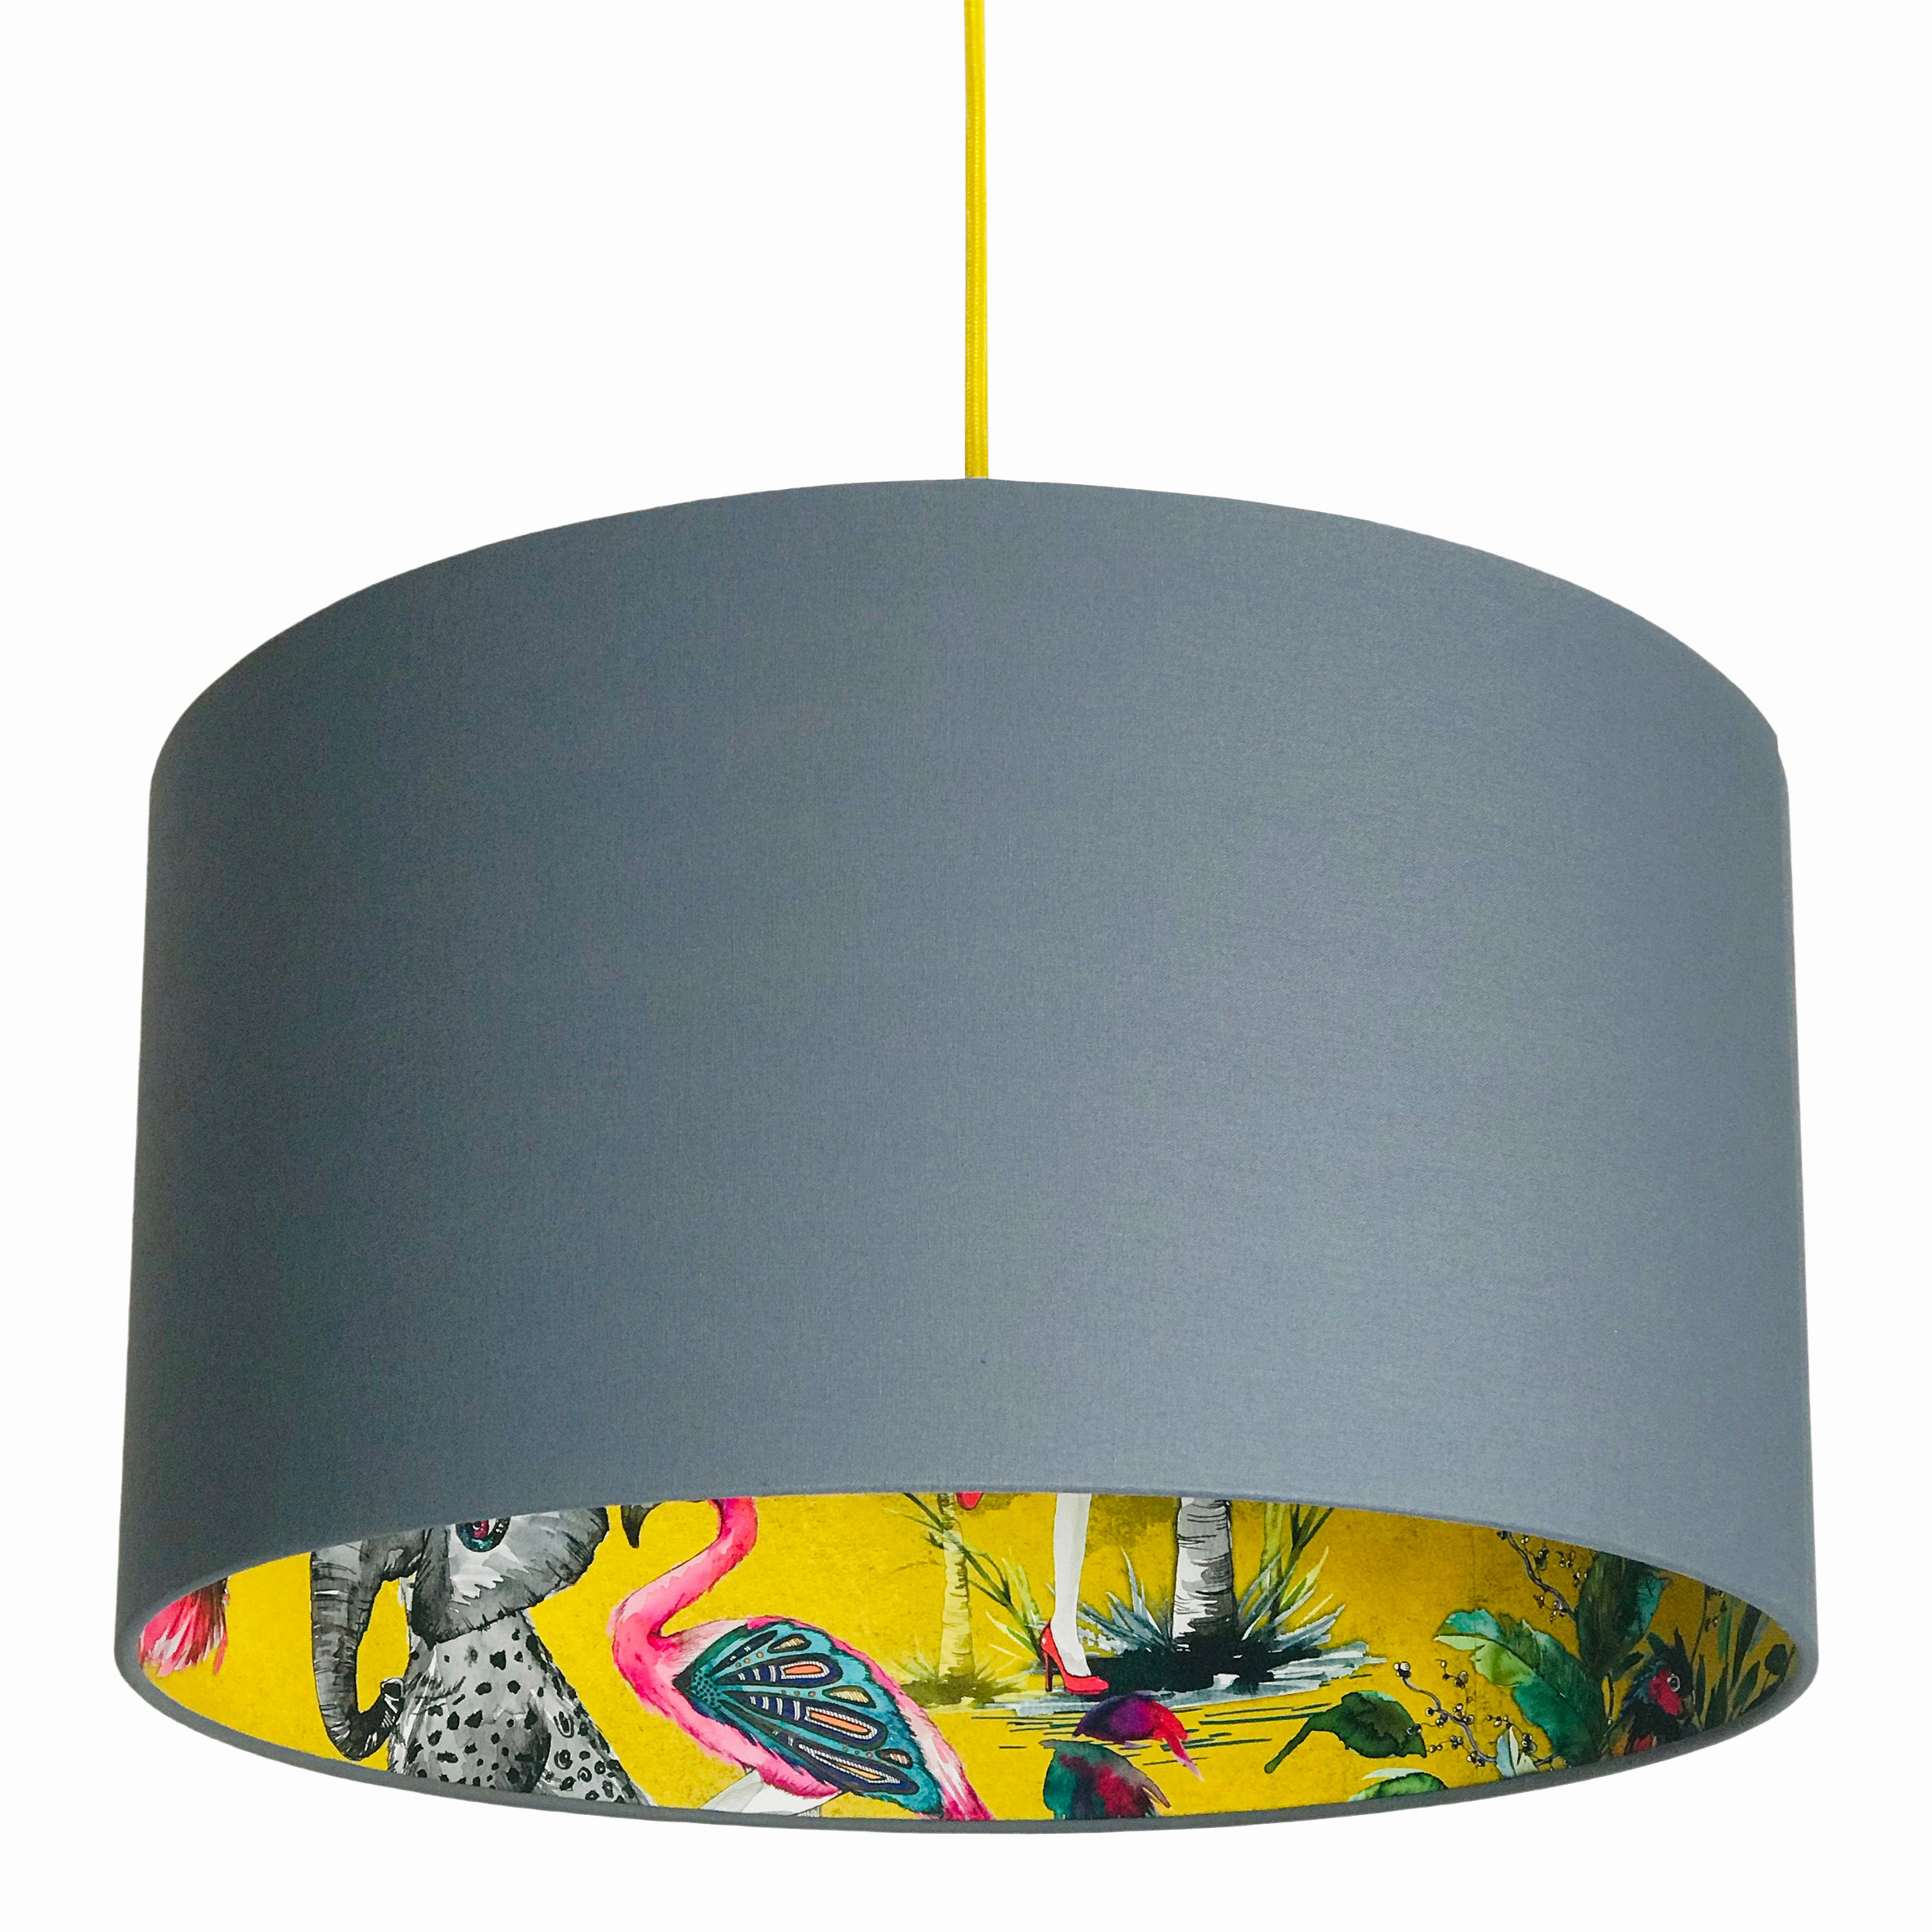 Picture of: Muck N Brass Mustard Chimiracle Silhouette Lampshade In Slate Grey